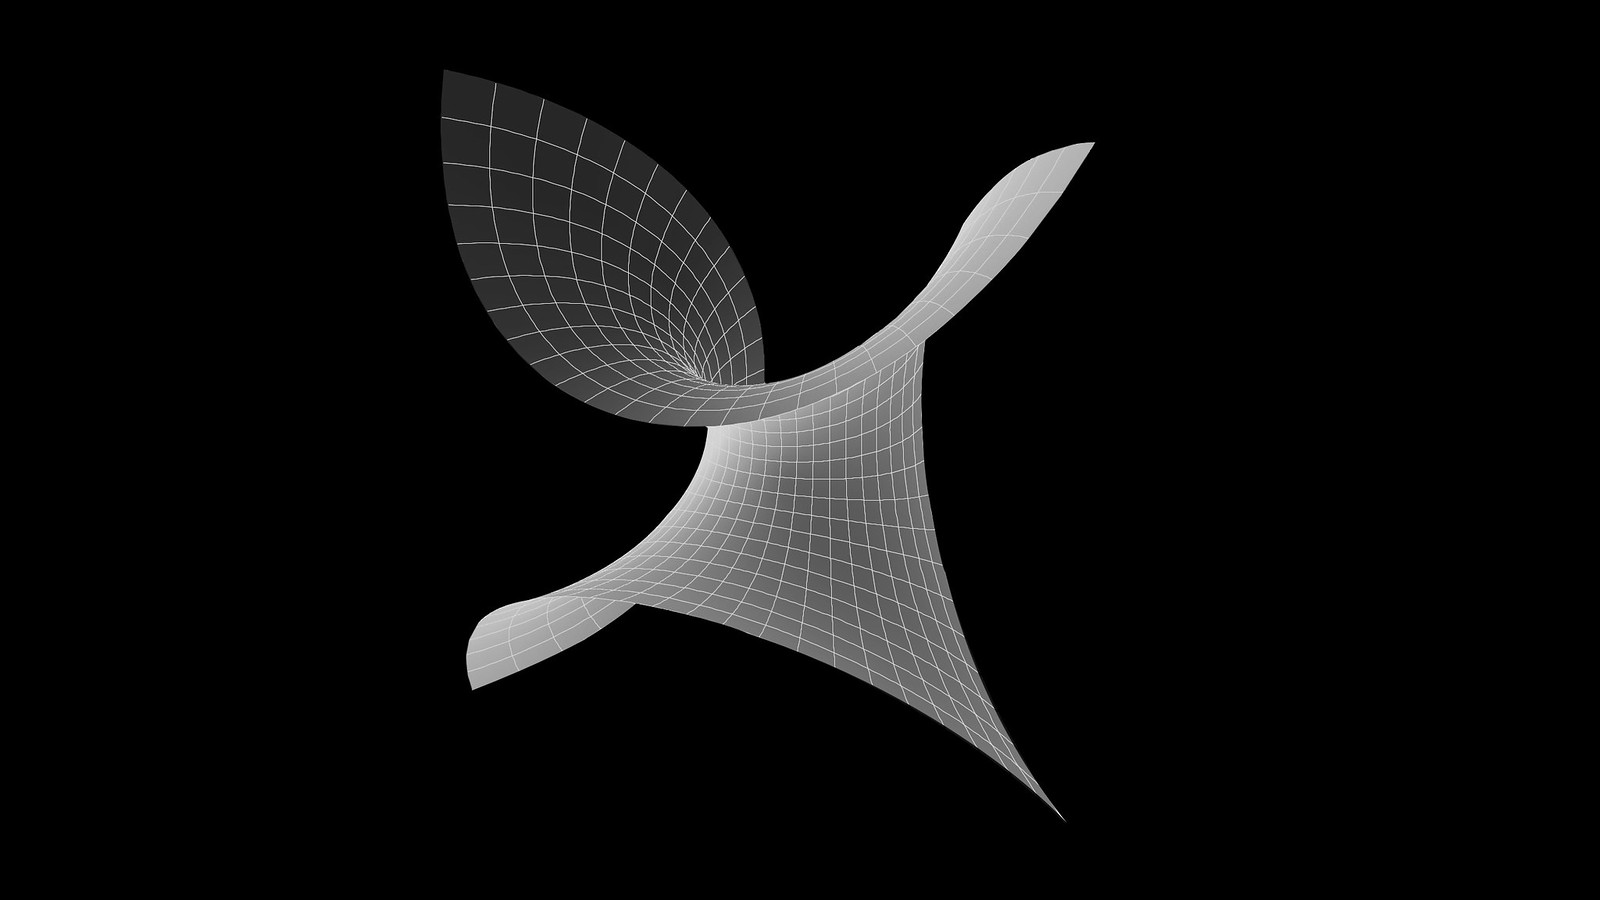 Minimal Surface - Enneper (cartesian)